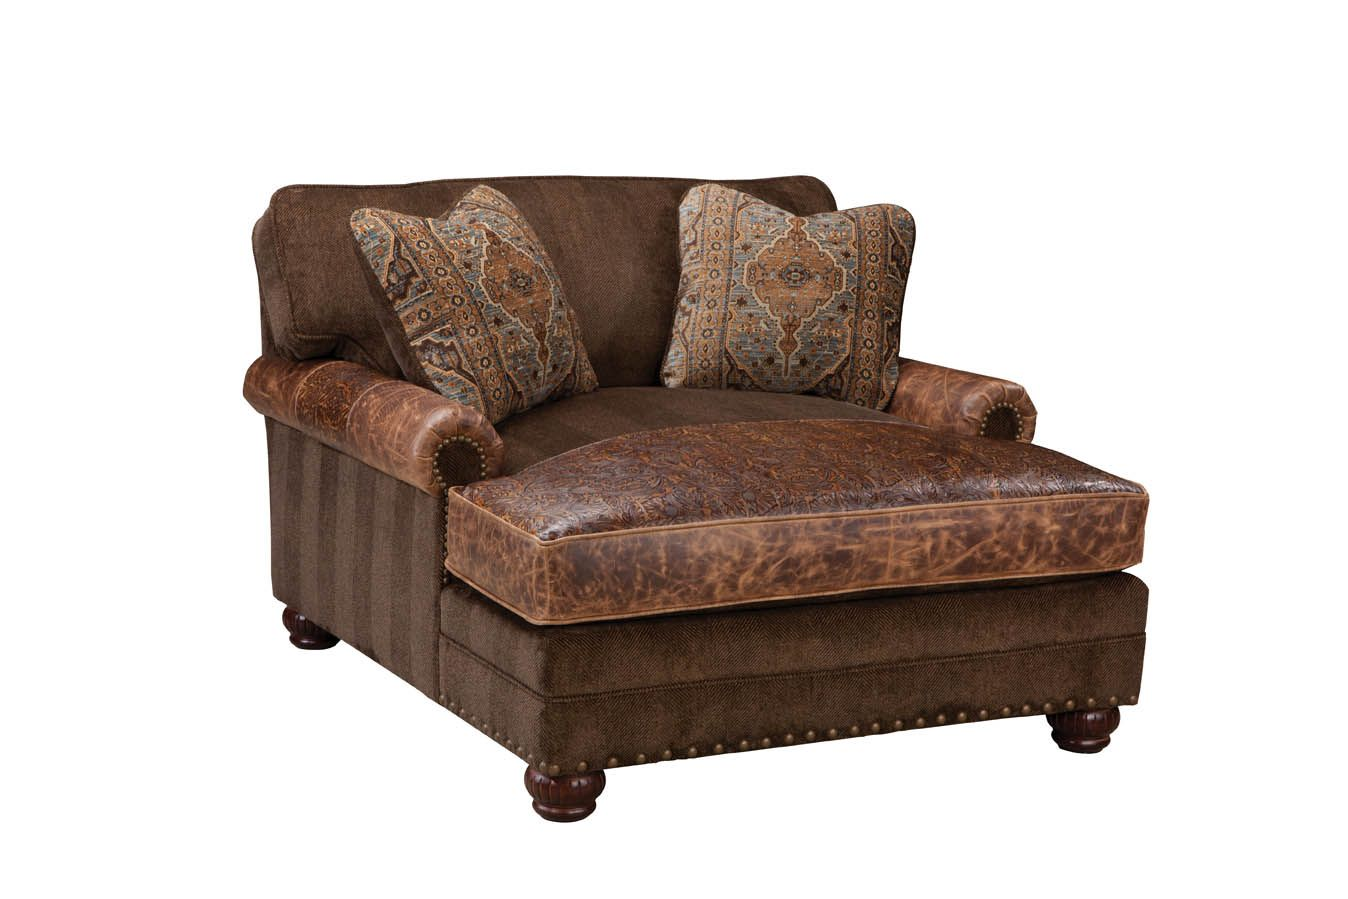 Beautiful Fabric Leather Combo Chaise On Sale For 2 499 00 Call Now 817 244 9377 Www Brumbaughs Com Home Furnishings Home Furnishings